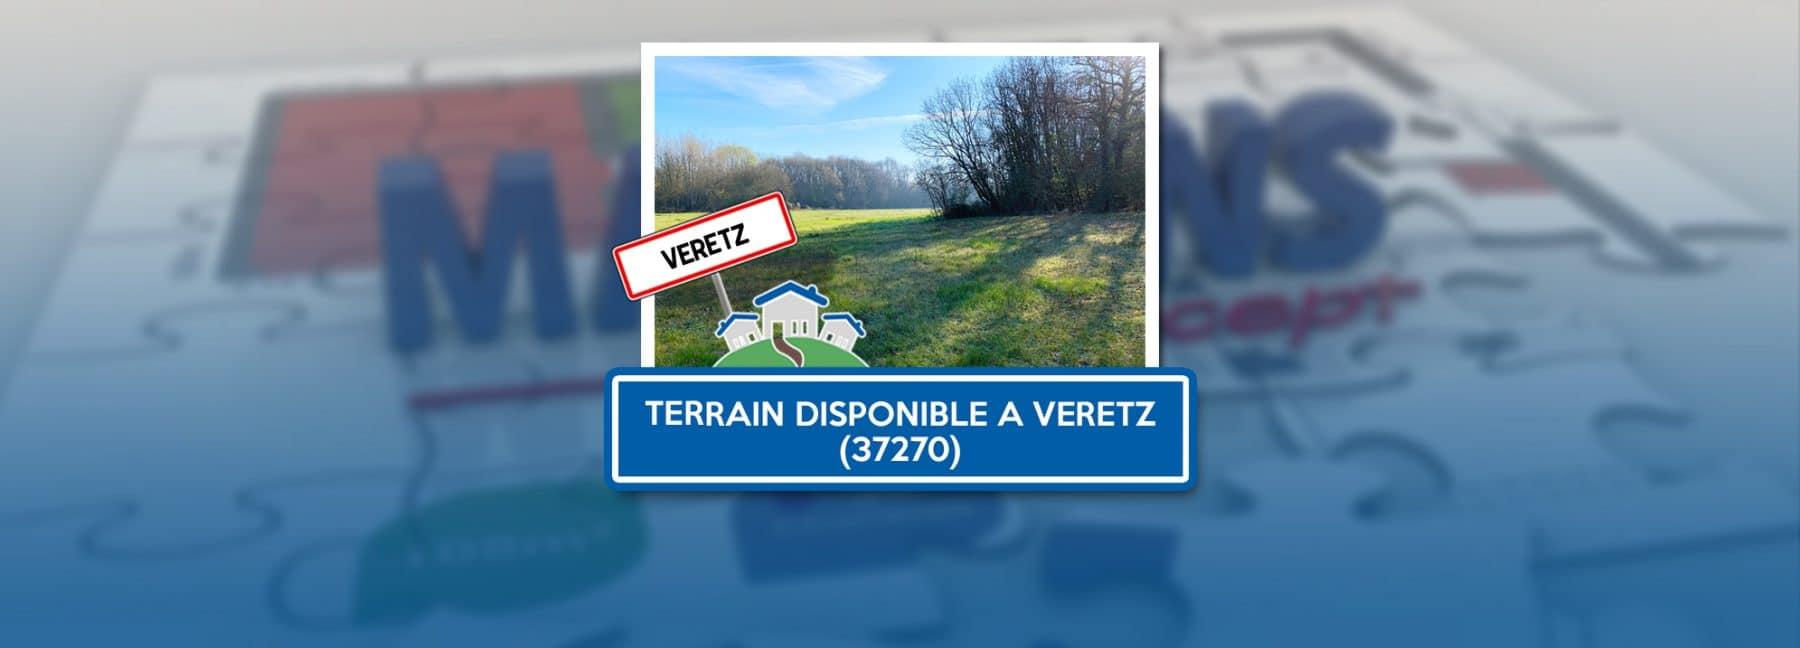 Terrain disponible à Veretz